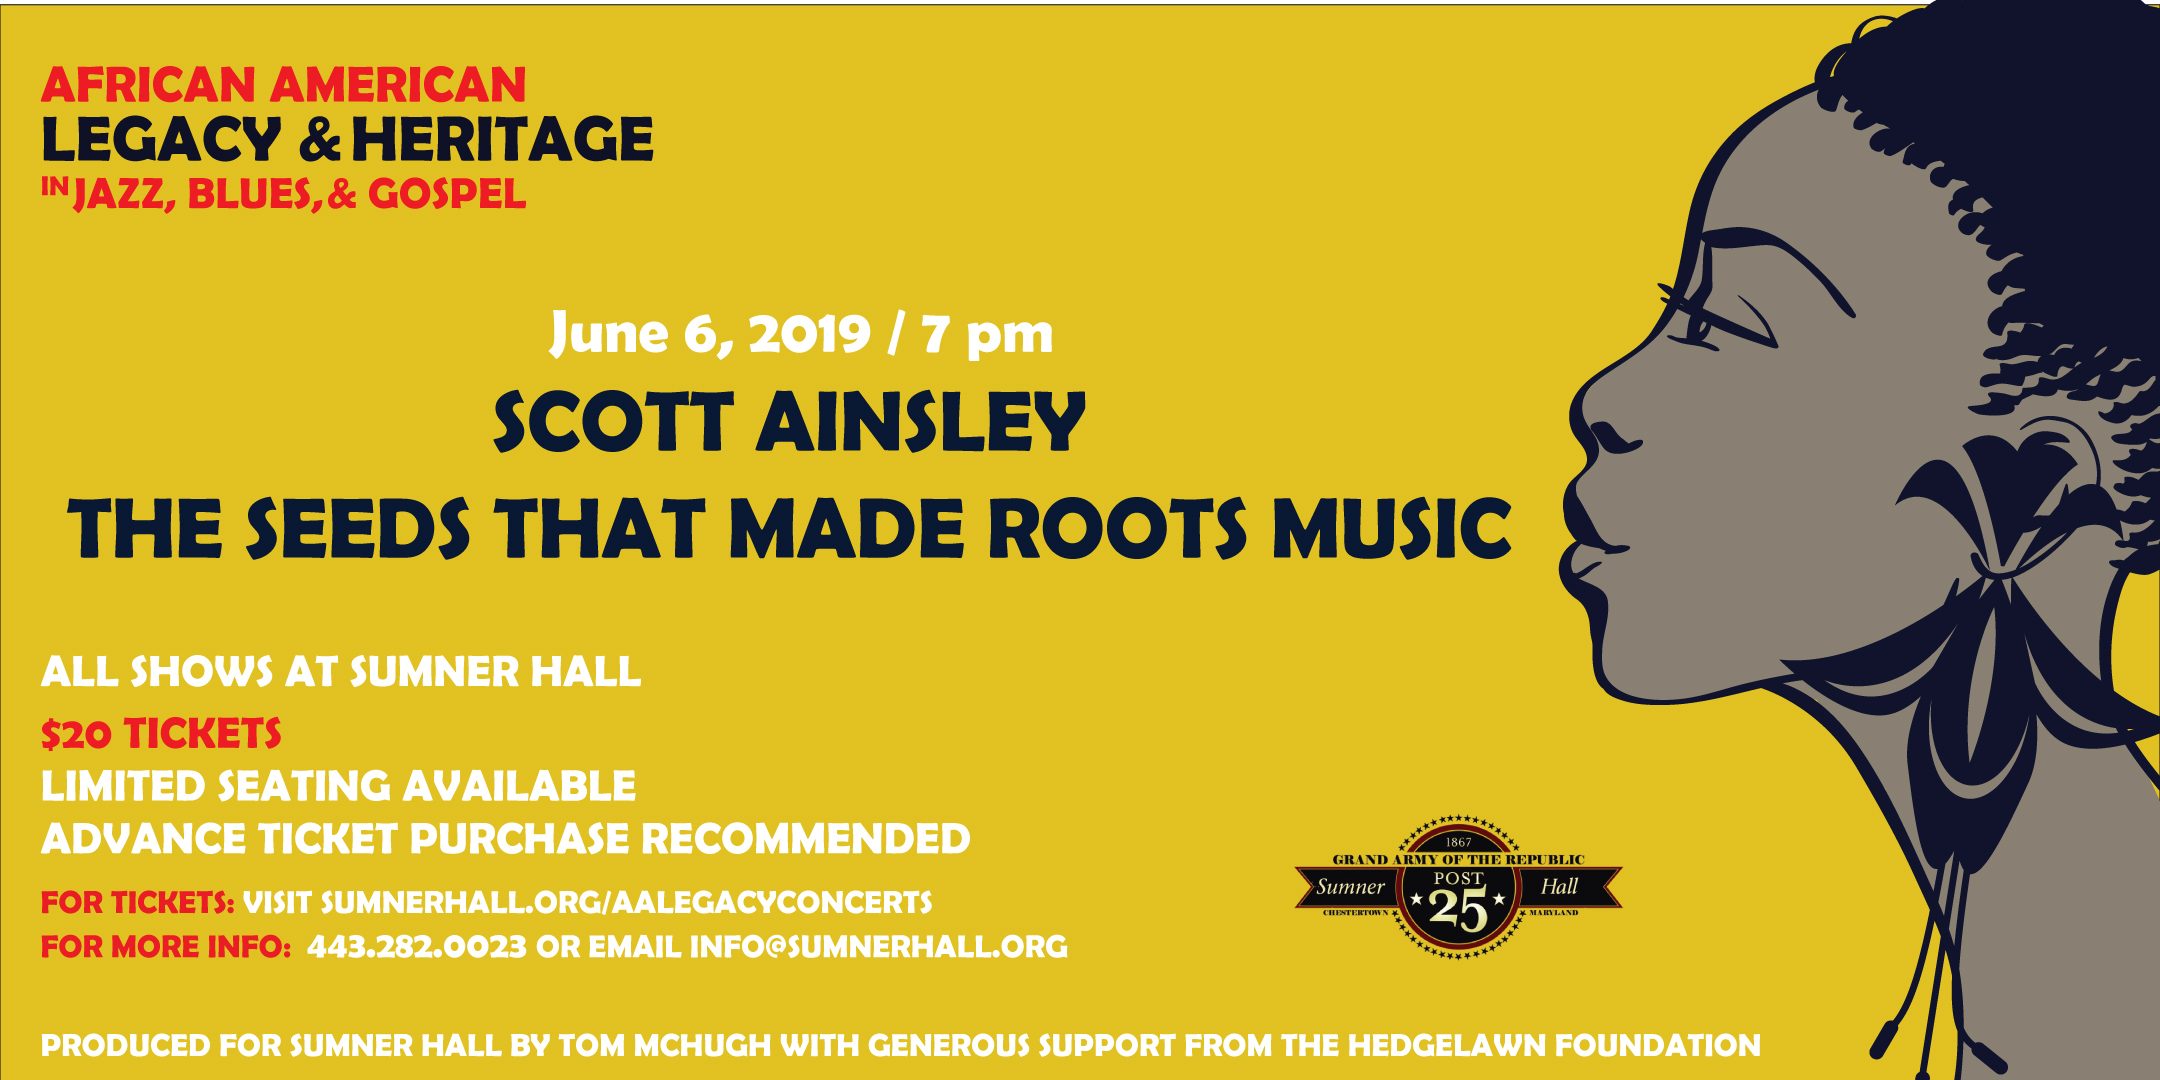 Scott Ainsley: The Seeds That Made Roots Music